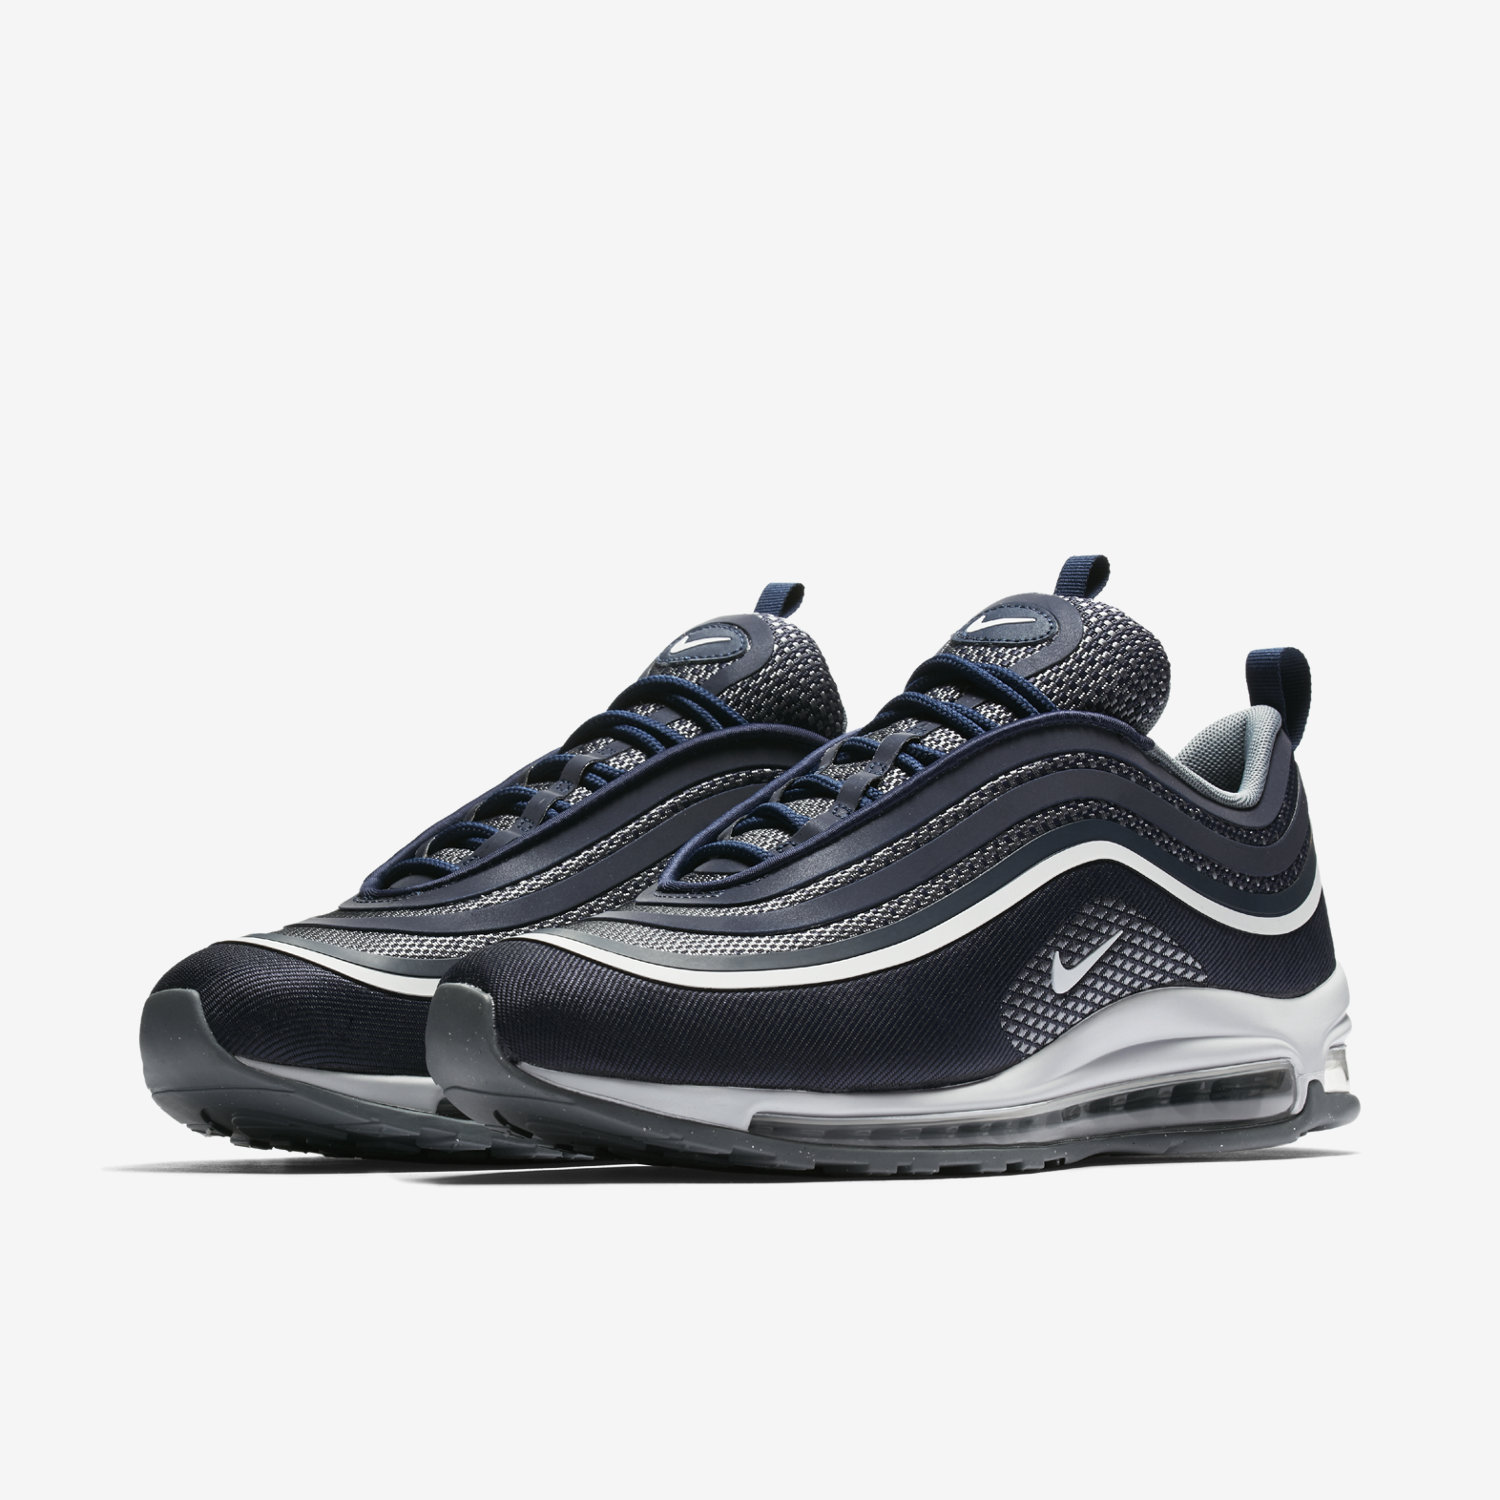 Cheap Nike Air Max 97 Ultra Footlocker